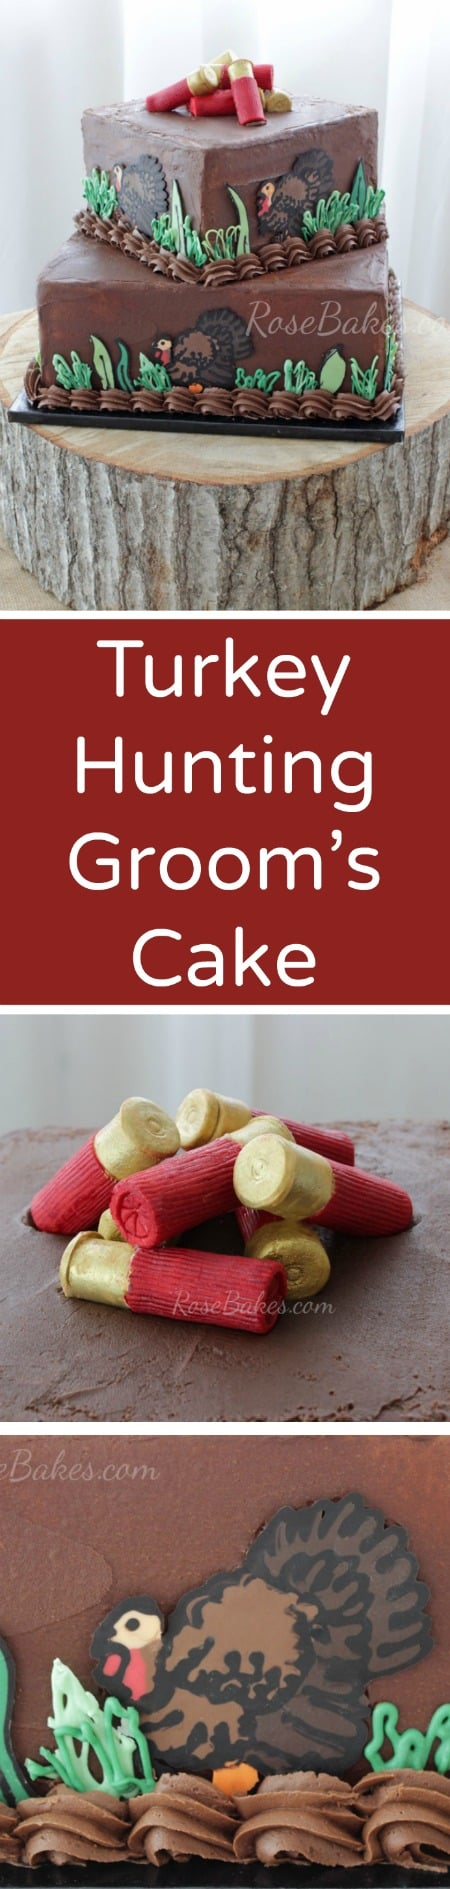 Turkey Hunters Groom's Cake